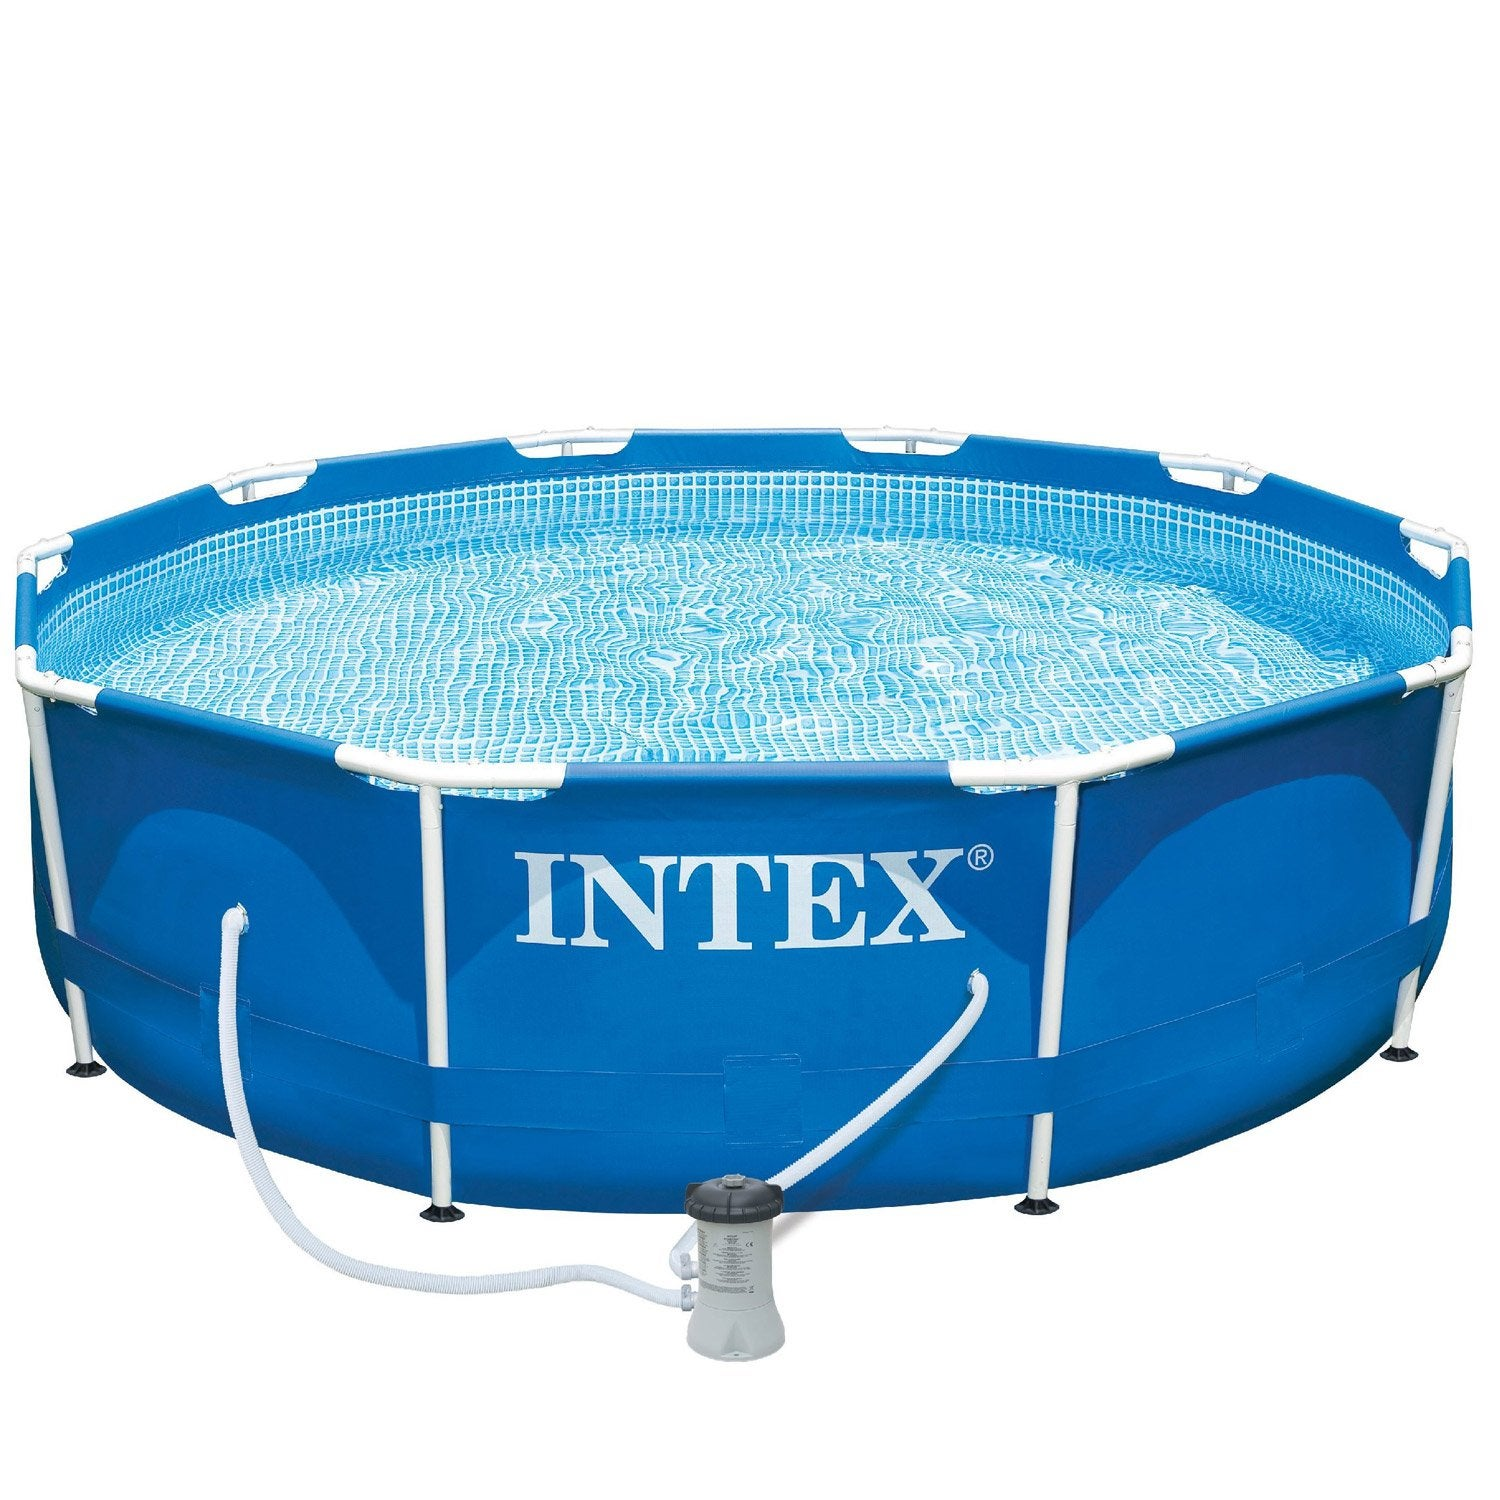 Piscine hors sol autoportante tubulaire metal frame intex for Rechauffeur piscine hors sol intex